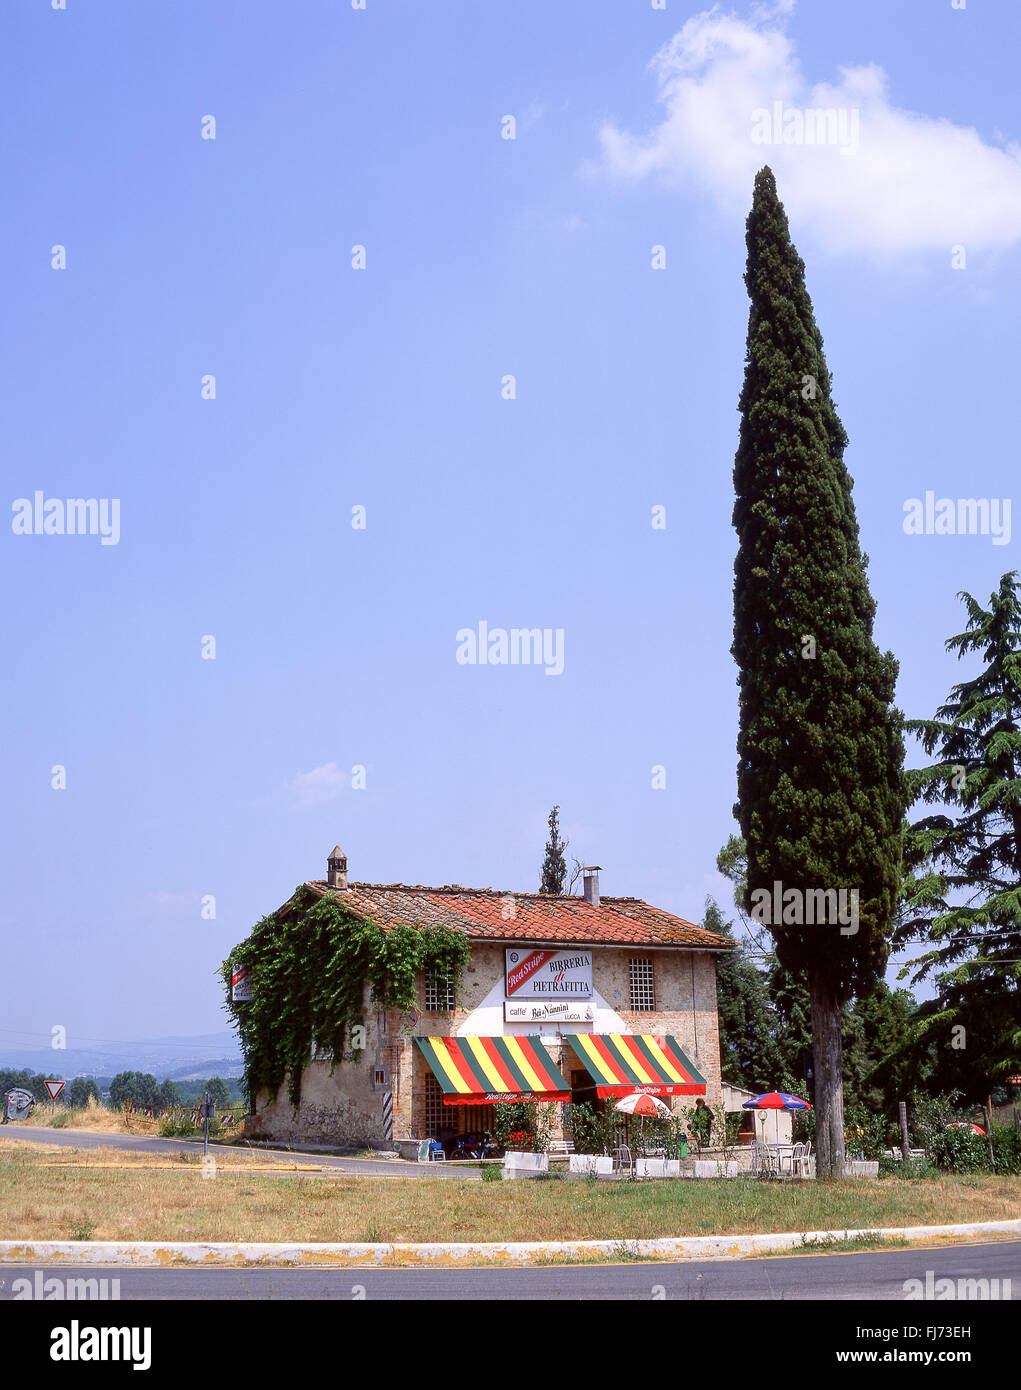 Small rural restaurant near Lucca, Province of Lucca, Tuscany Region, Italy - Stock Image